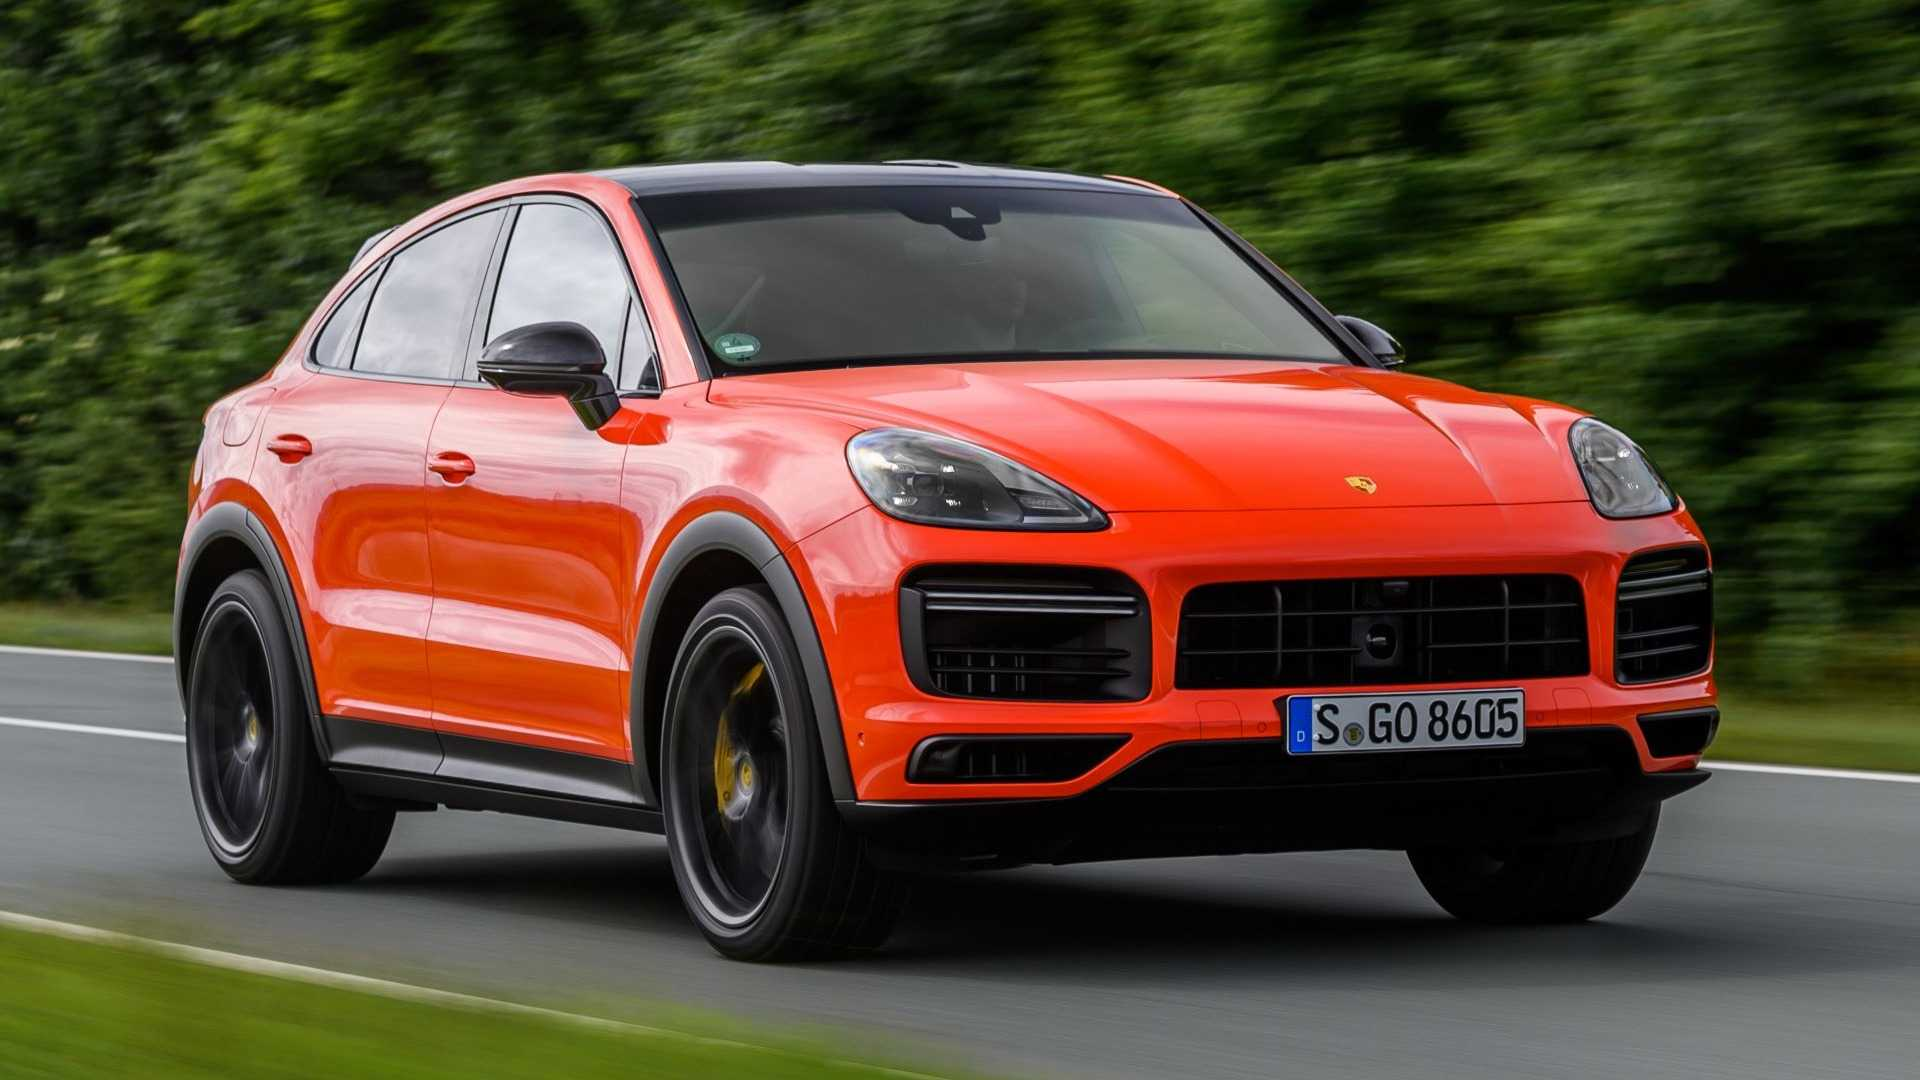 71 All New 2020 Porsche Cayenne Review